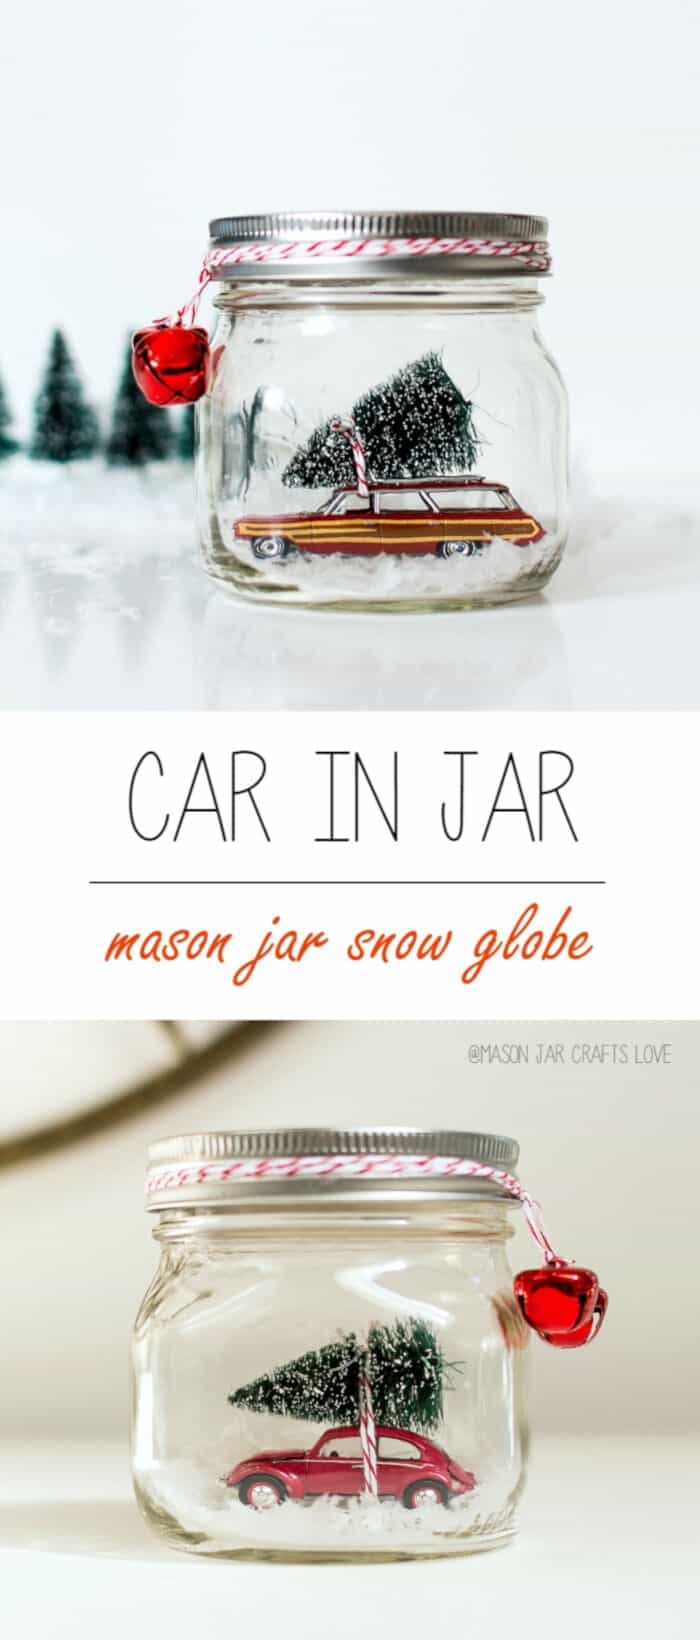 Car in Jar Snow Globe by Mason Jar Crafts